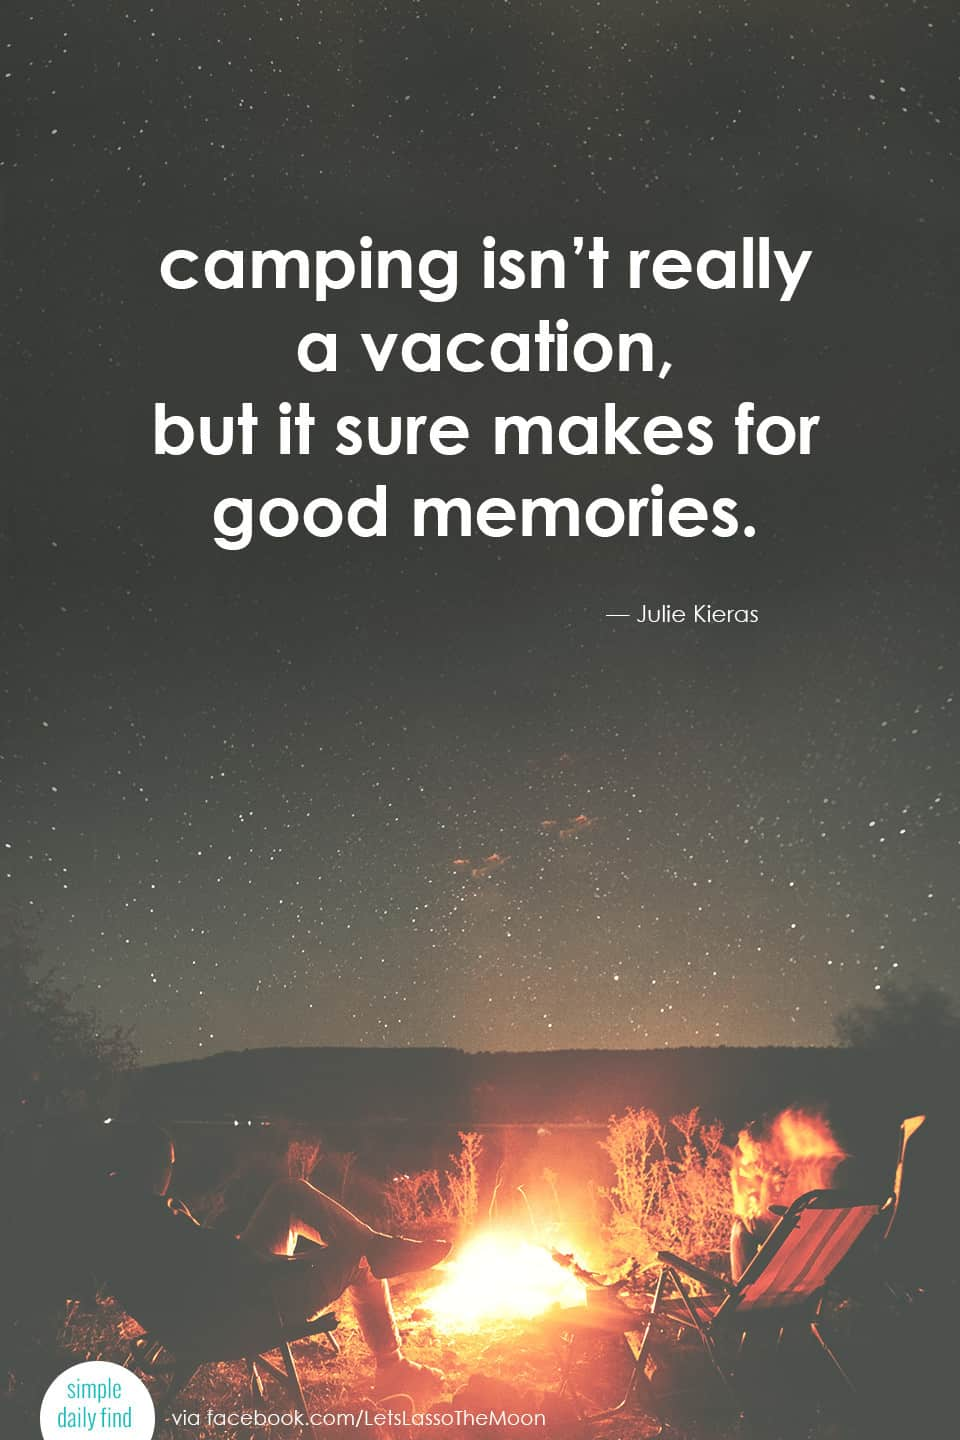 Camping isn't really a vacation, but it sure makes for good memories. *Isn't that the truth? Love this quote.